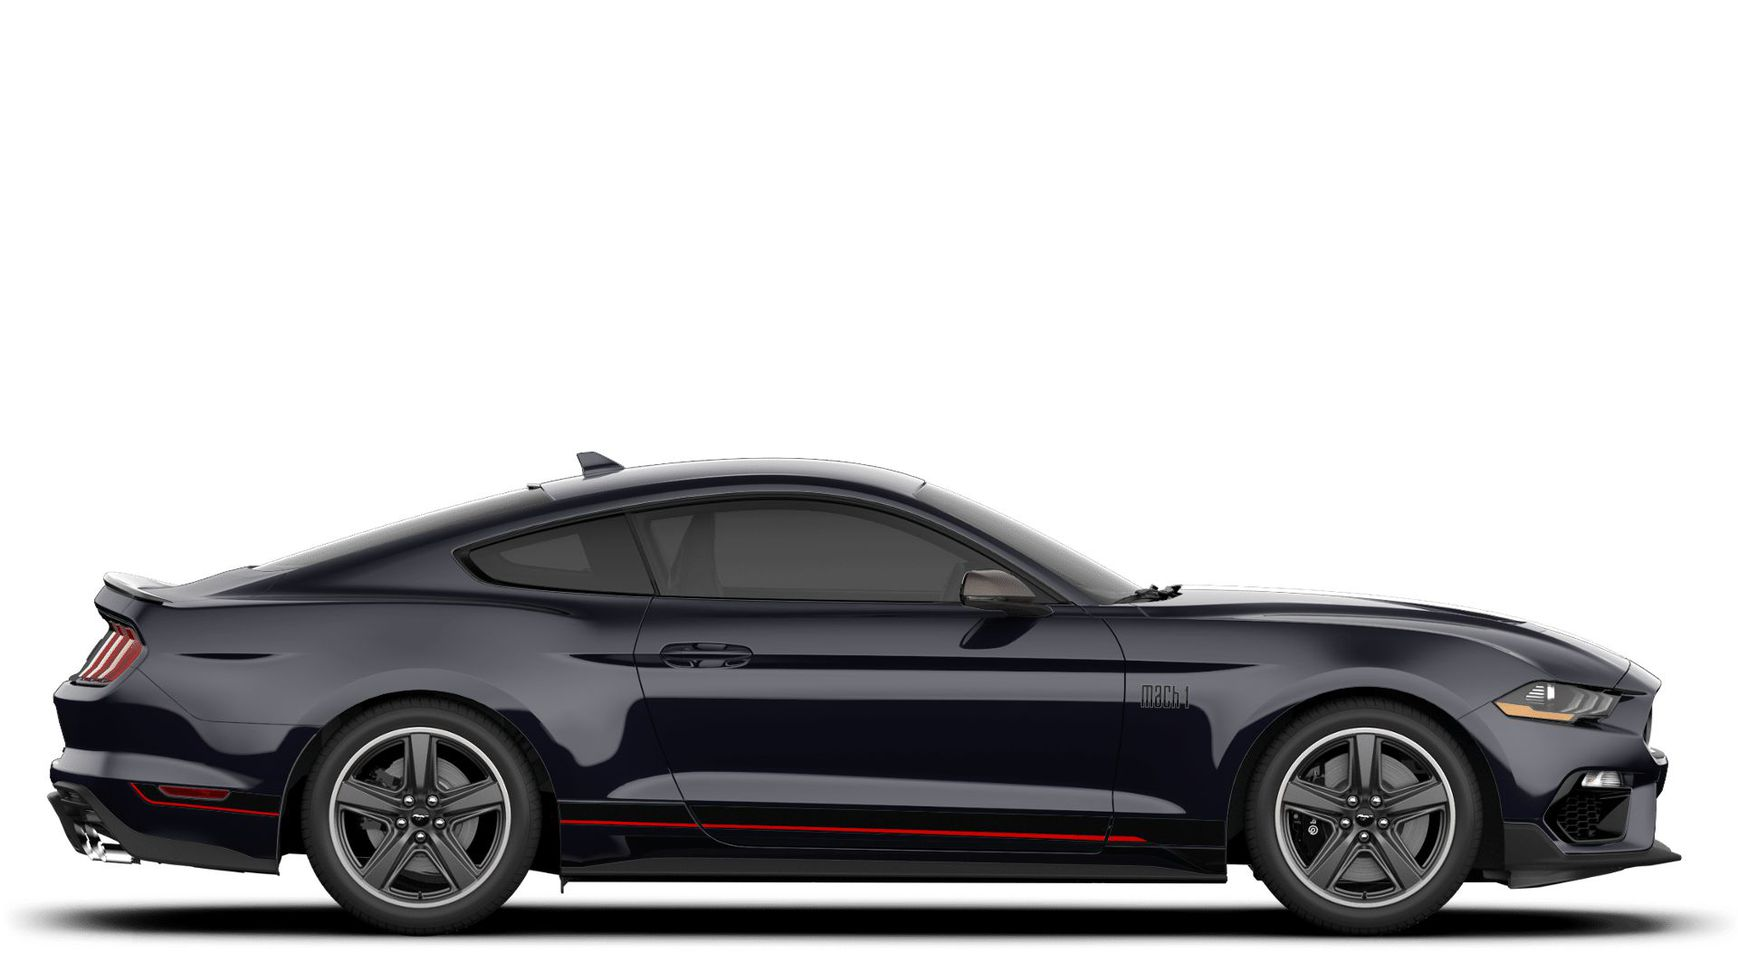 Ford Mustang 2021 Mach 1